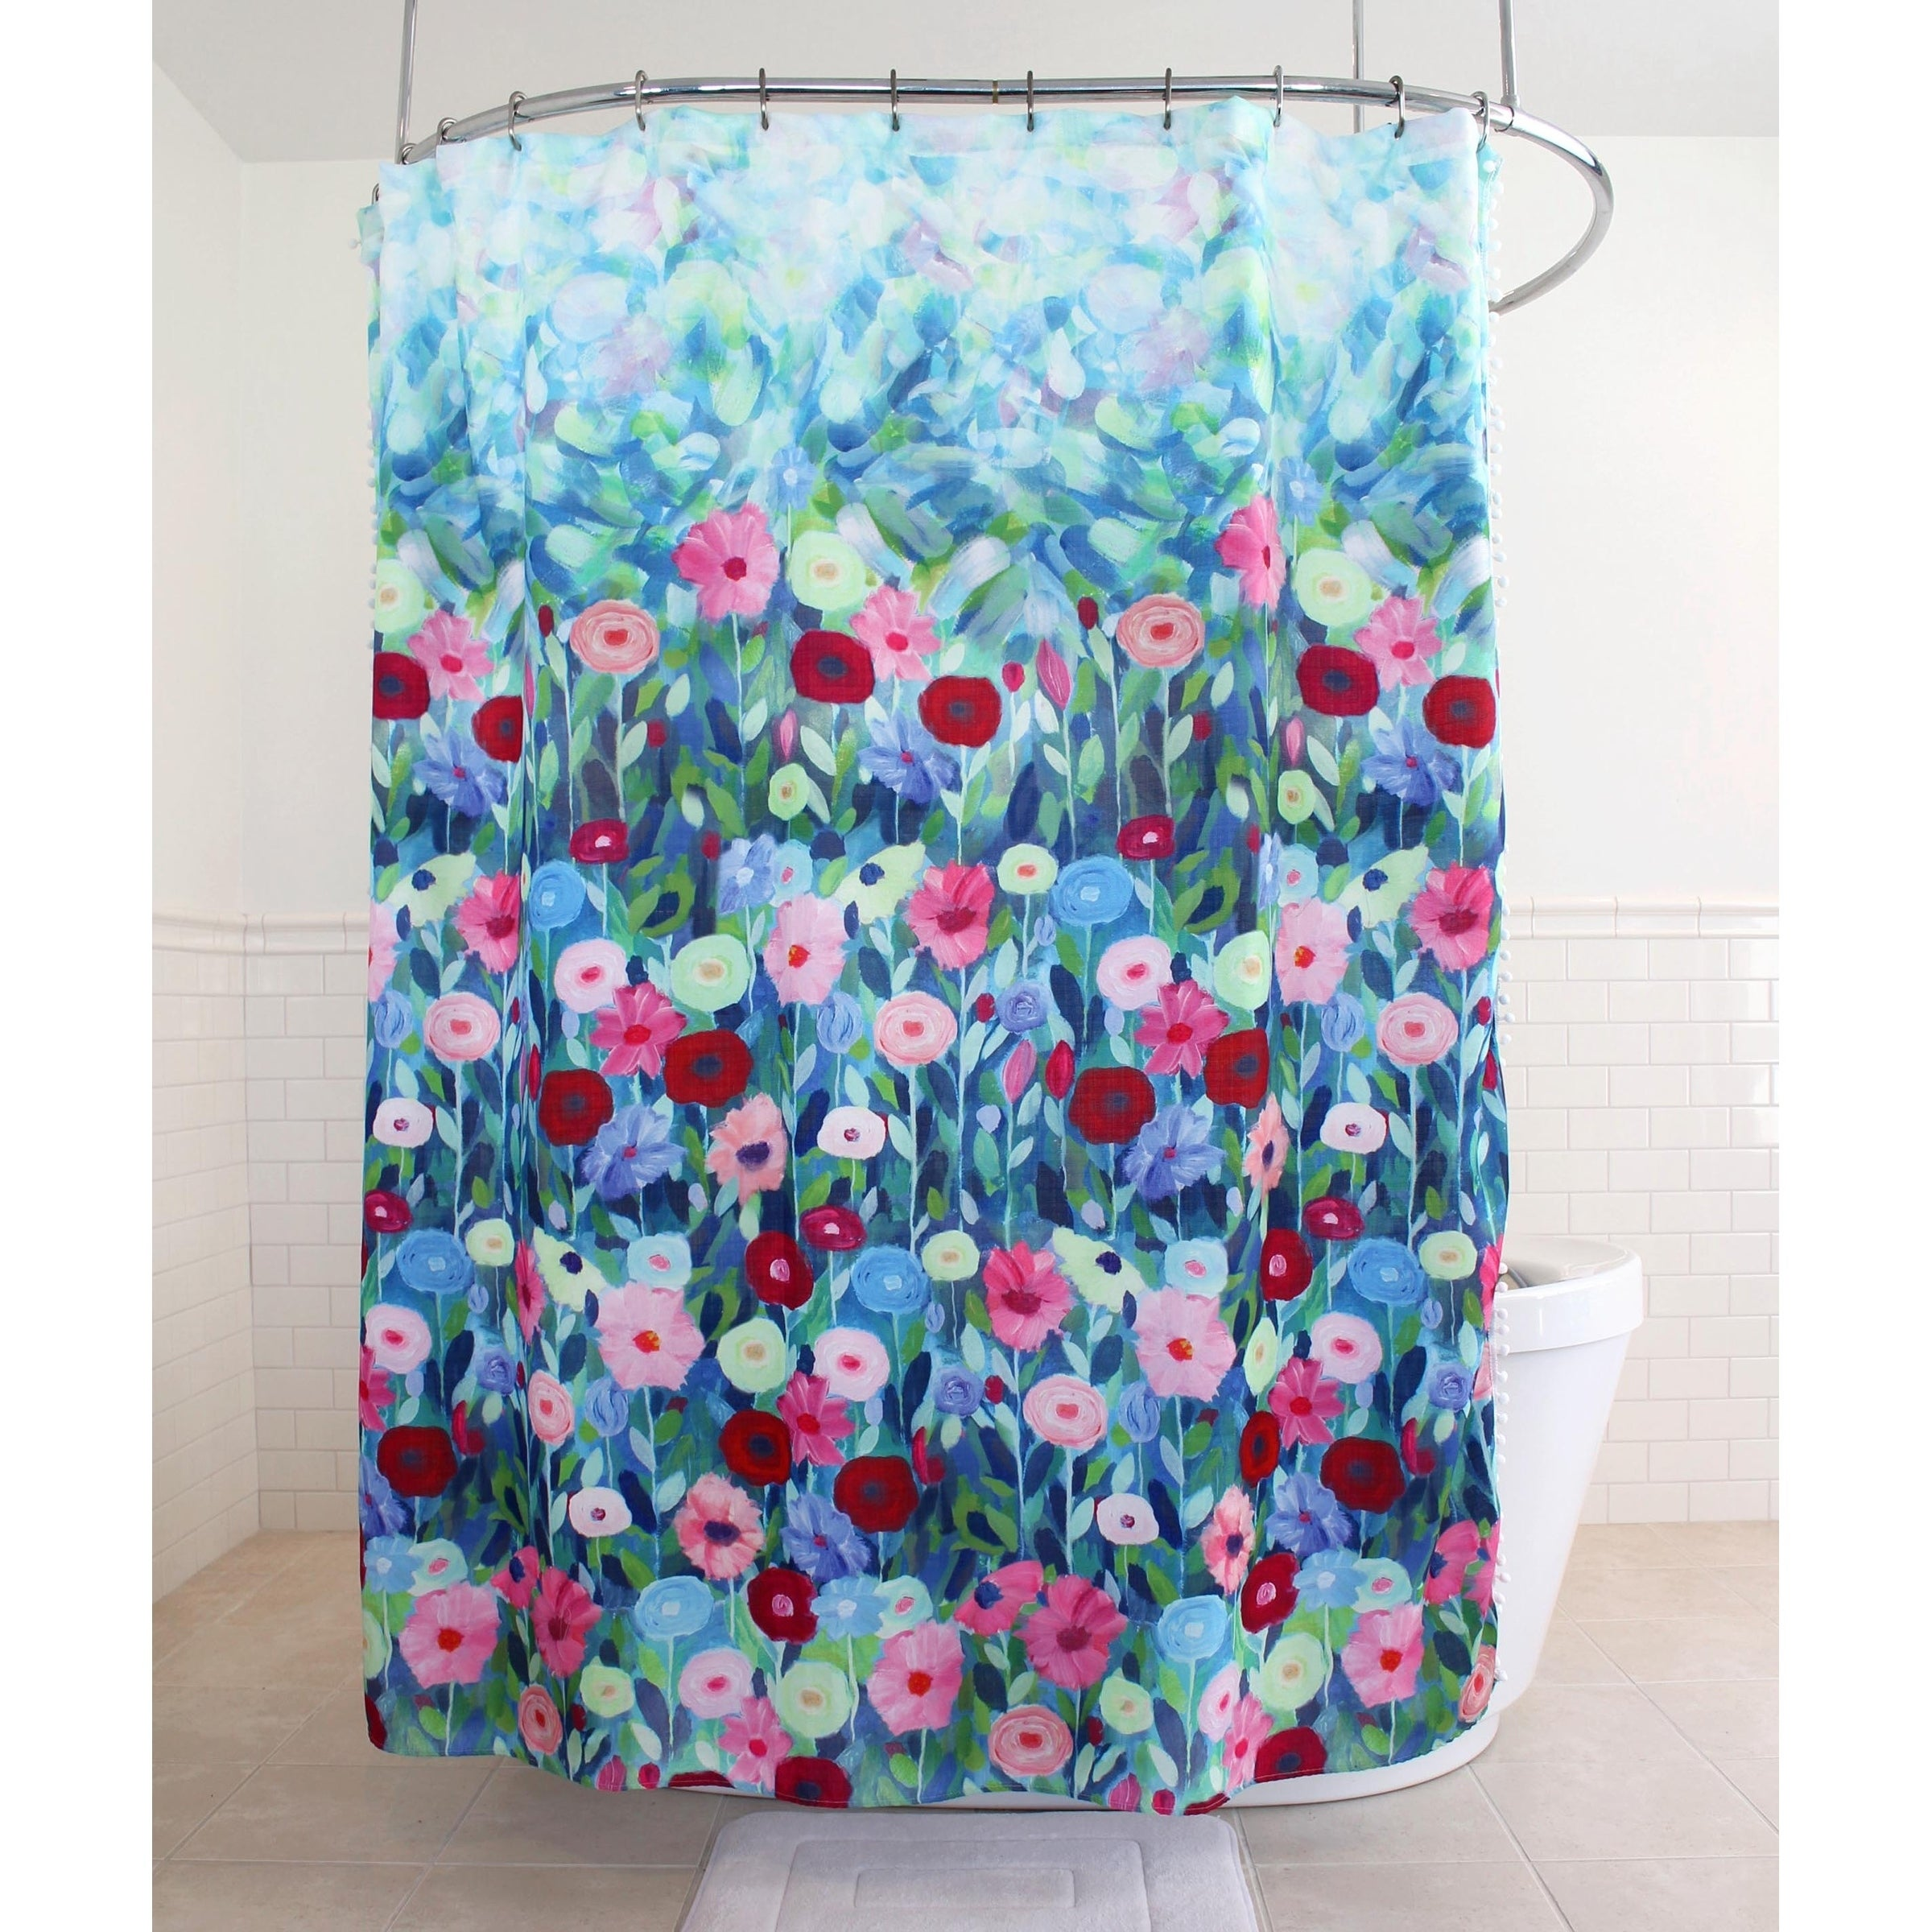 Details About Splash Home Lovely Floral Polyester Fabric Shower Curtain 70 X 72 Multi